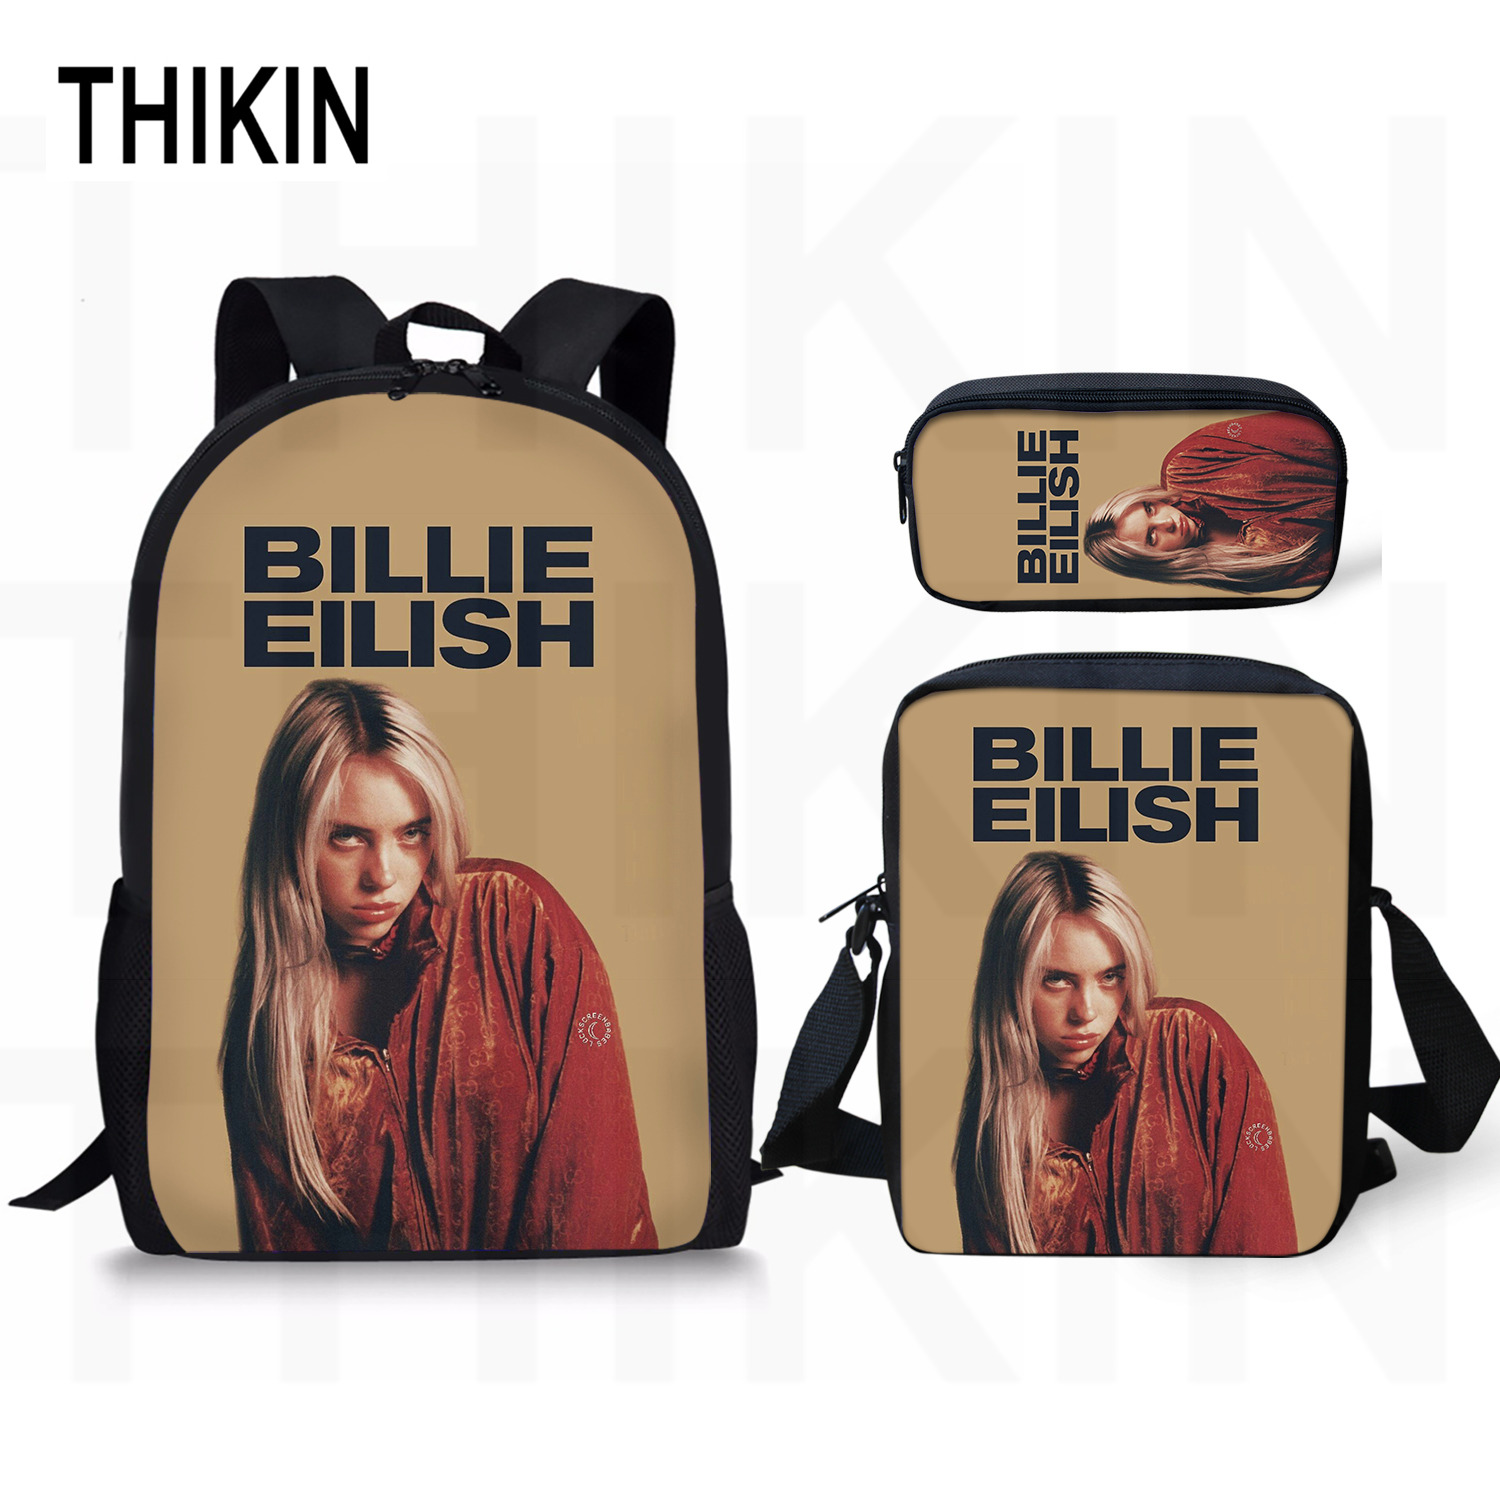 THIKIN Billie Eilish Print School Baags For Teenagers Cool Girls Fashion 3 PCS/SET Kids Girls School Backpacks Casual Mochila